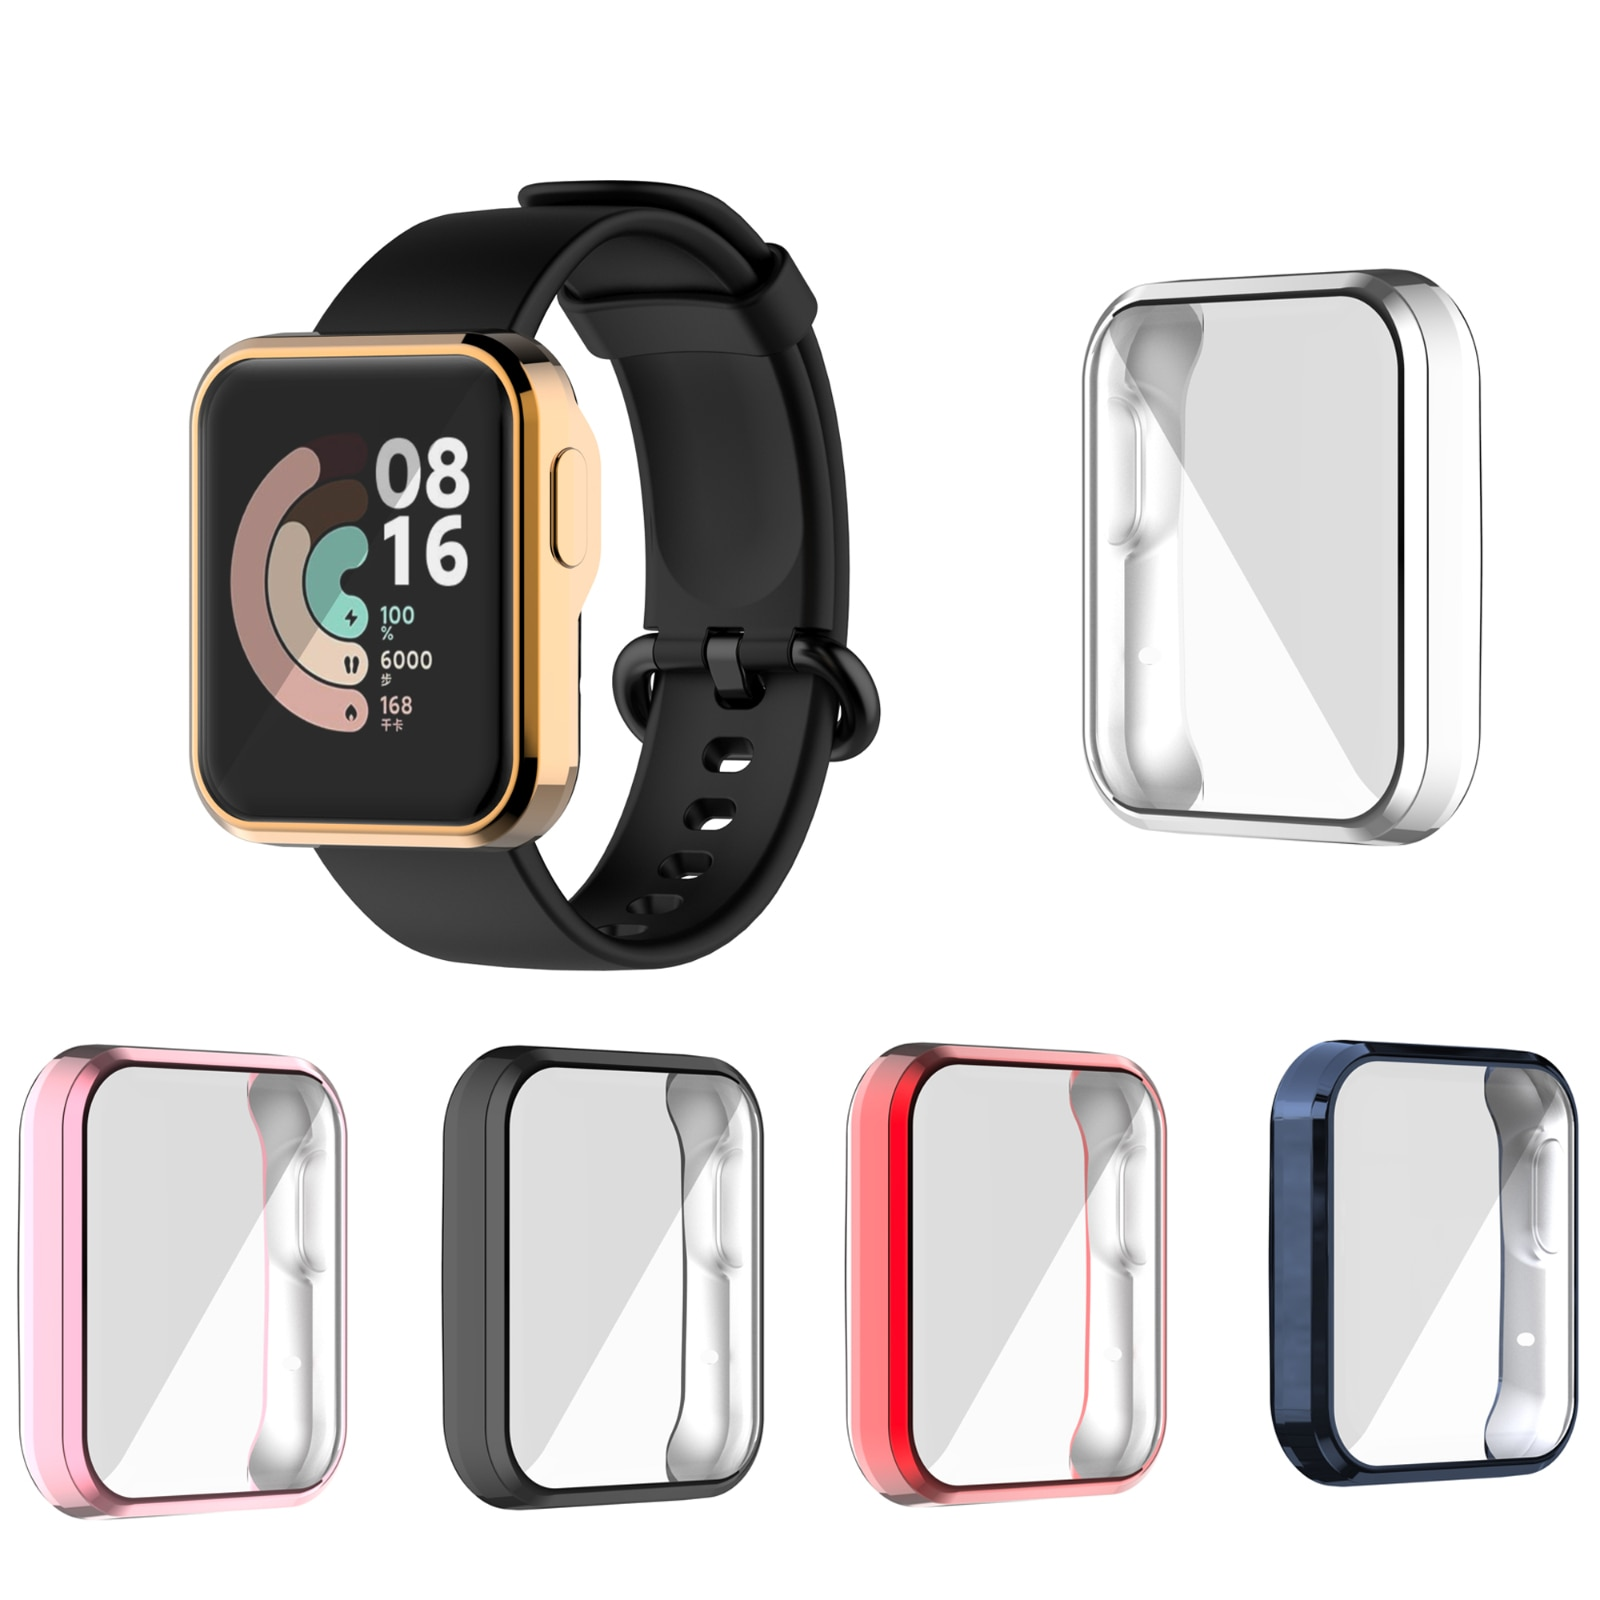 Plating TPU Protector Case For Xiaomi Mi Watch Lite Full Screen Protective Shell Cover for Mi Watch Lite ultra slim tpu watch case skin protective cover for xiaomi mi watch lite global version for redmi watch accessories